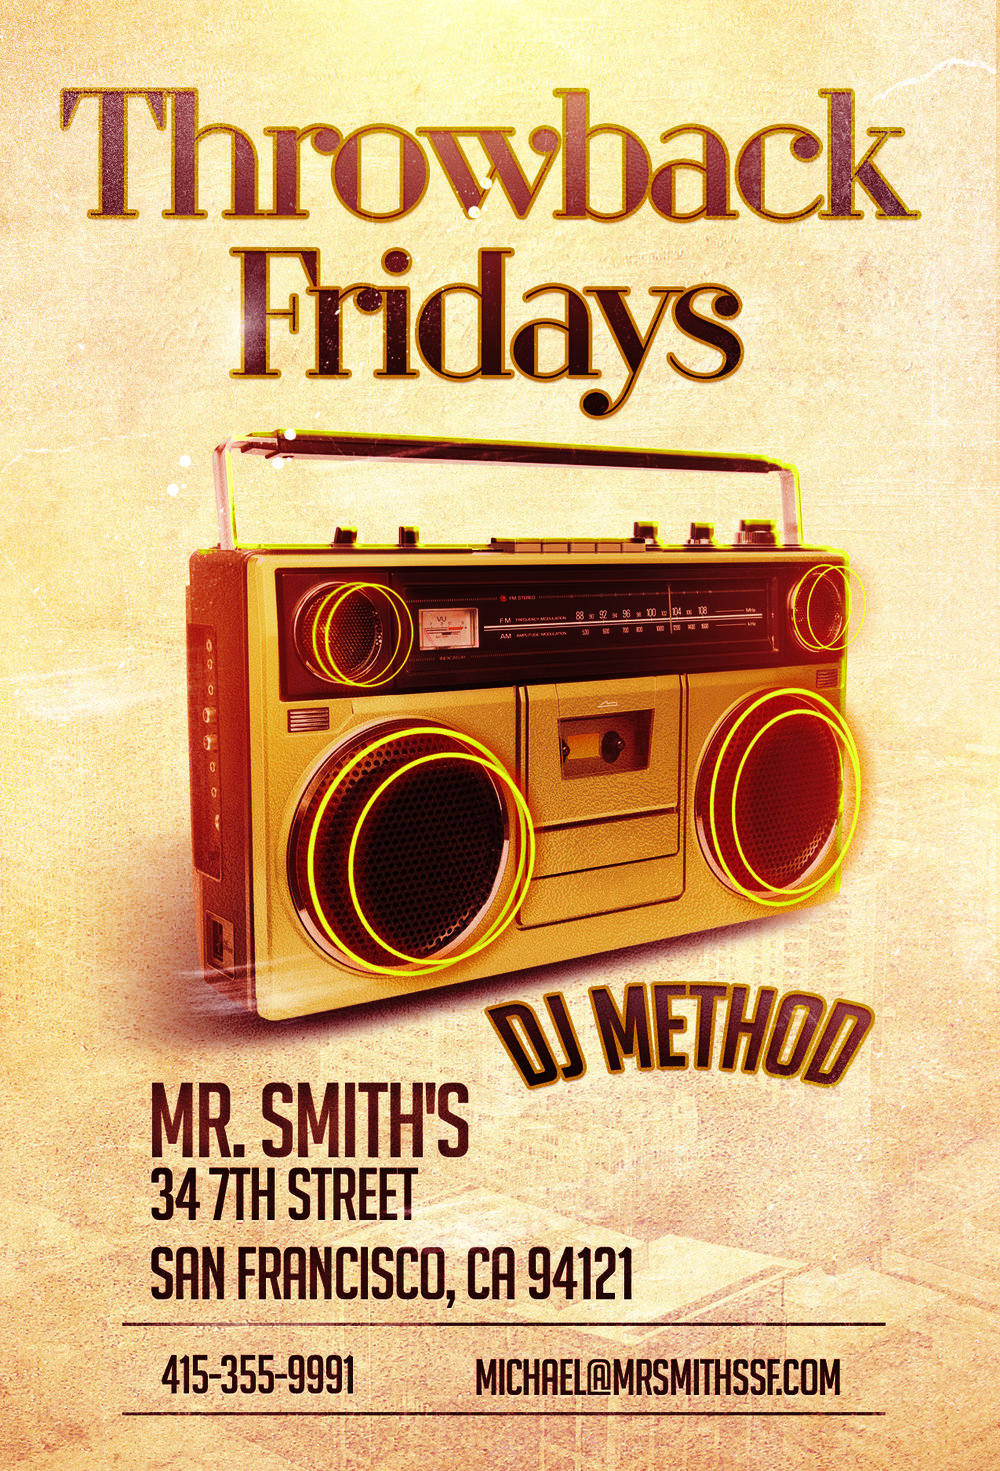 Throwback Fridays DJ Method .jpg